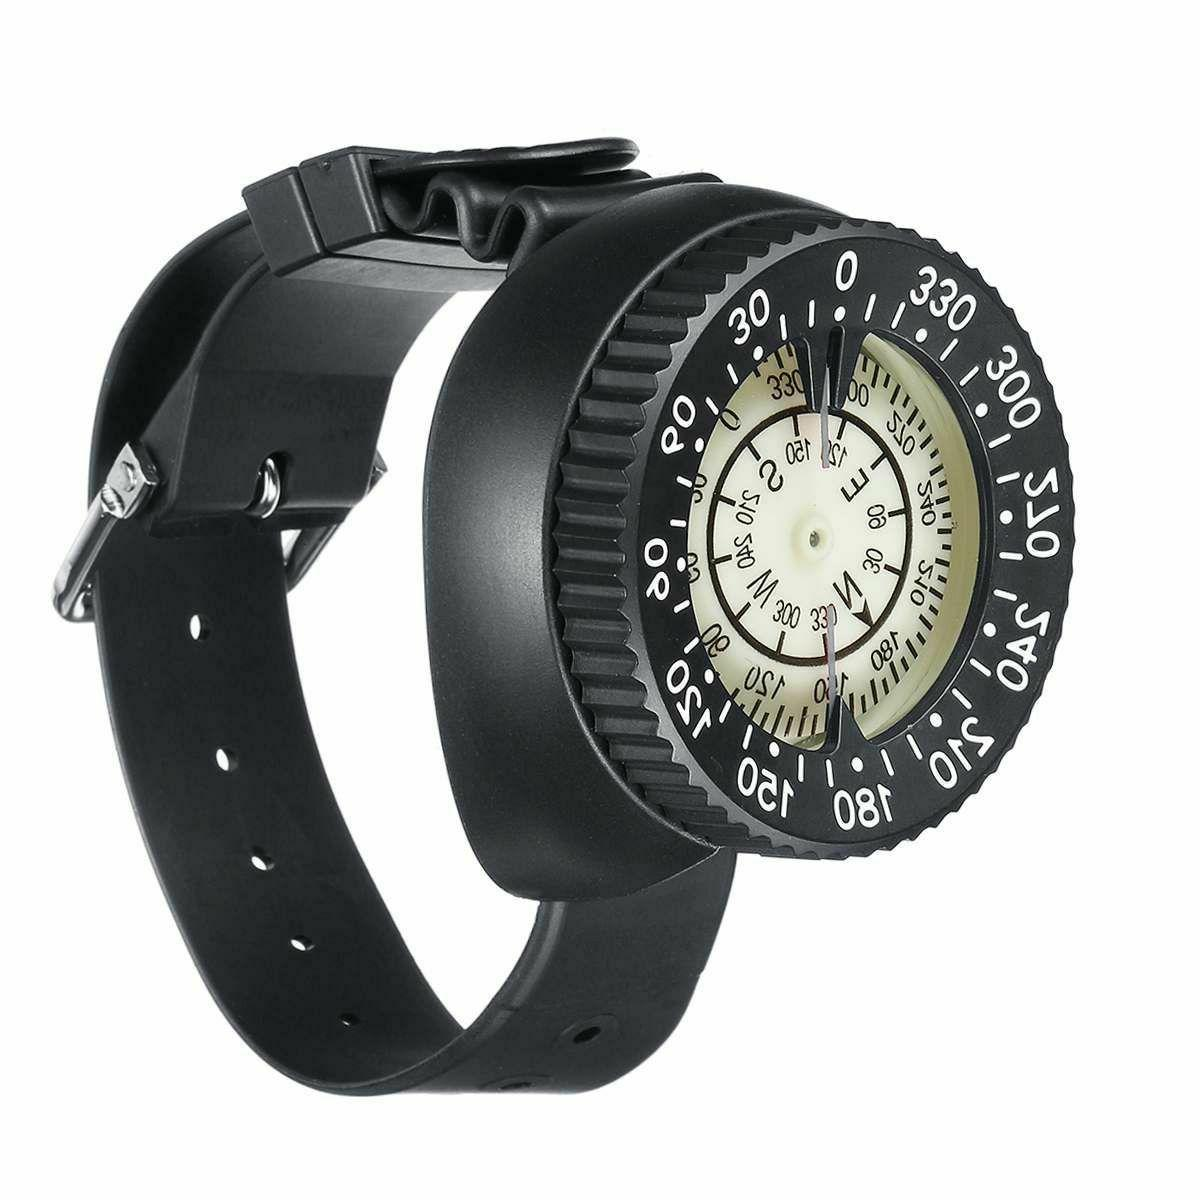 Diving Compass Gauge Wrist Band Scuba Underwater